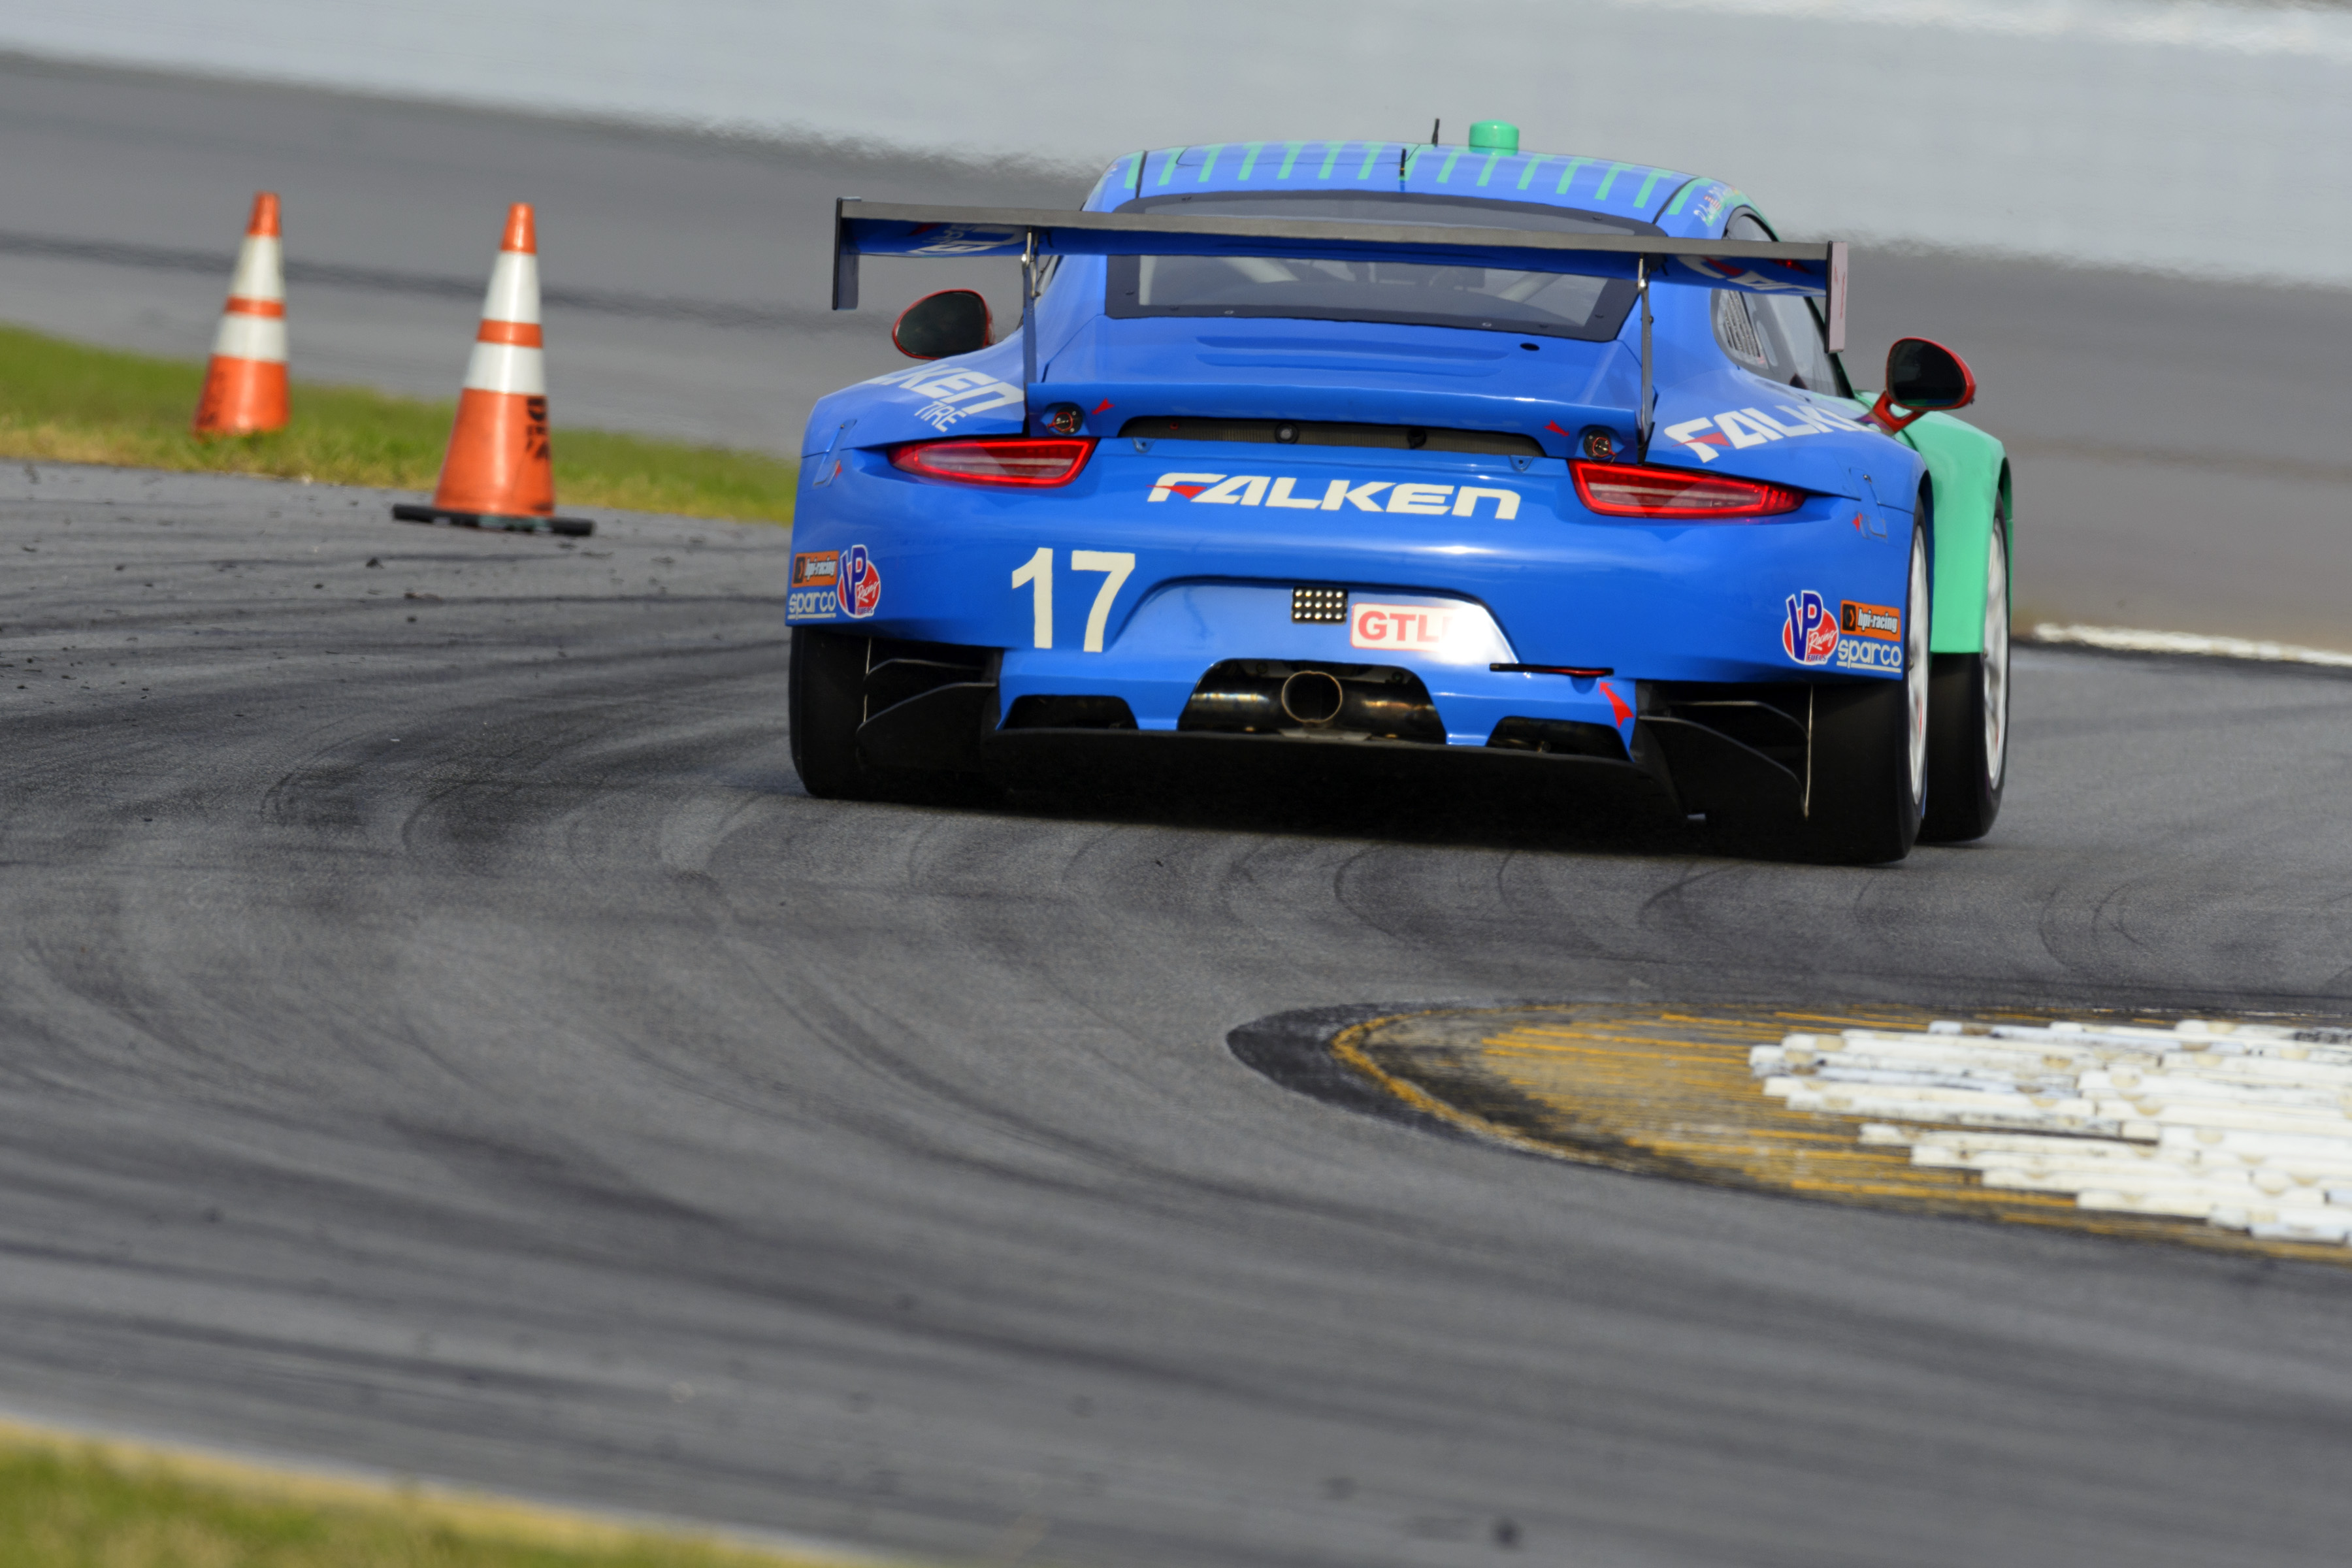 The iconic teal and blue Falken Tire Porsche 911 RSR.